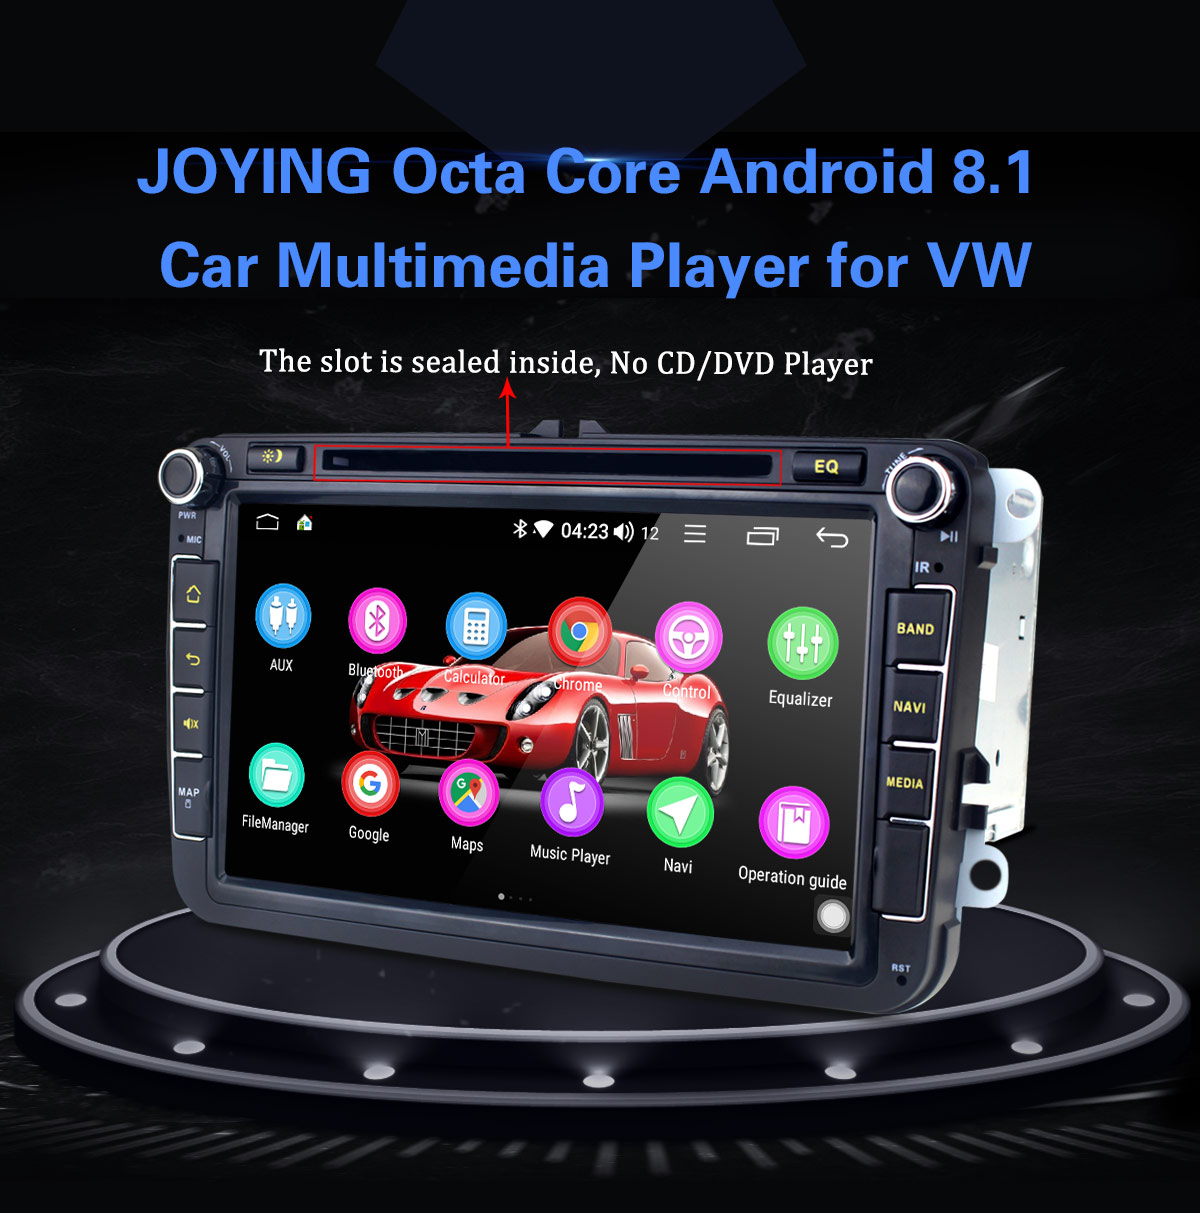 Joying 4G VW/Golf/Jetta/Passat Car Radio Android 8 1 Octa Core 8 inch DSP  Head Unit